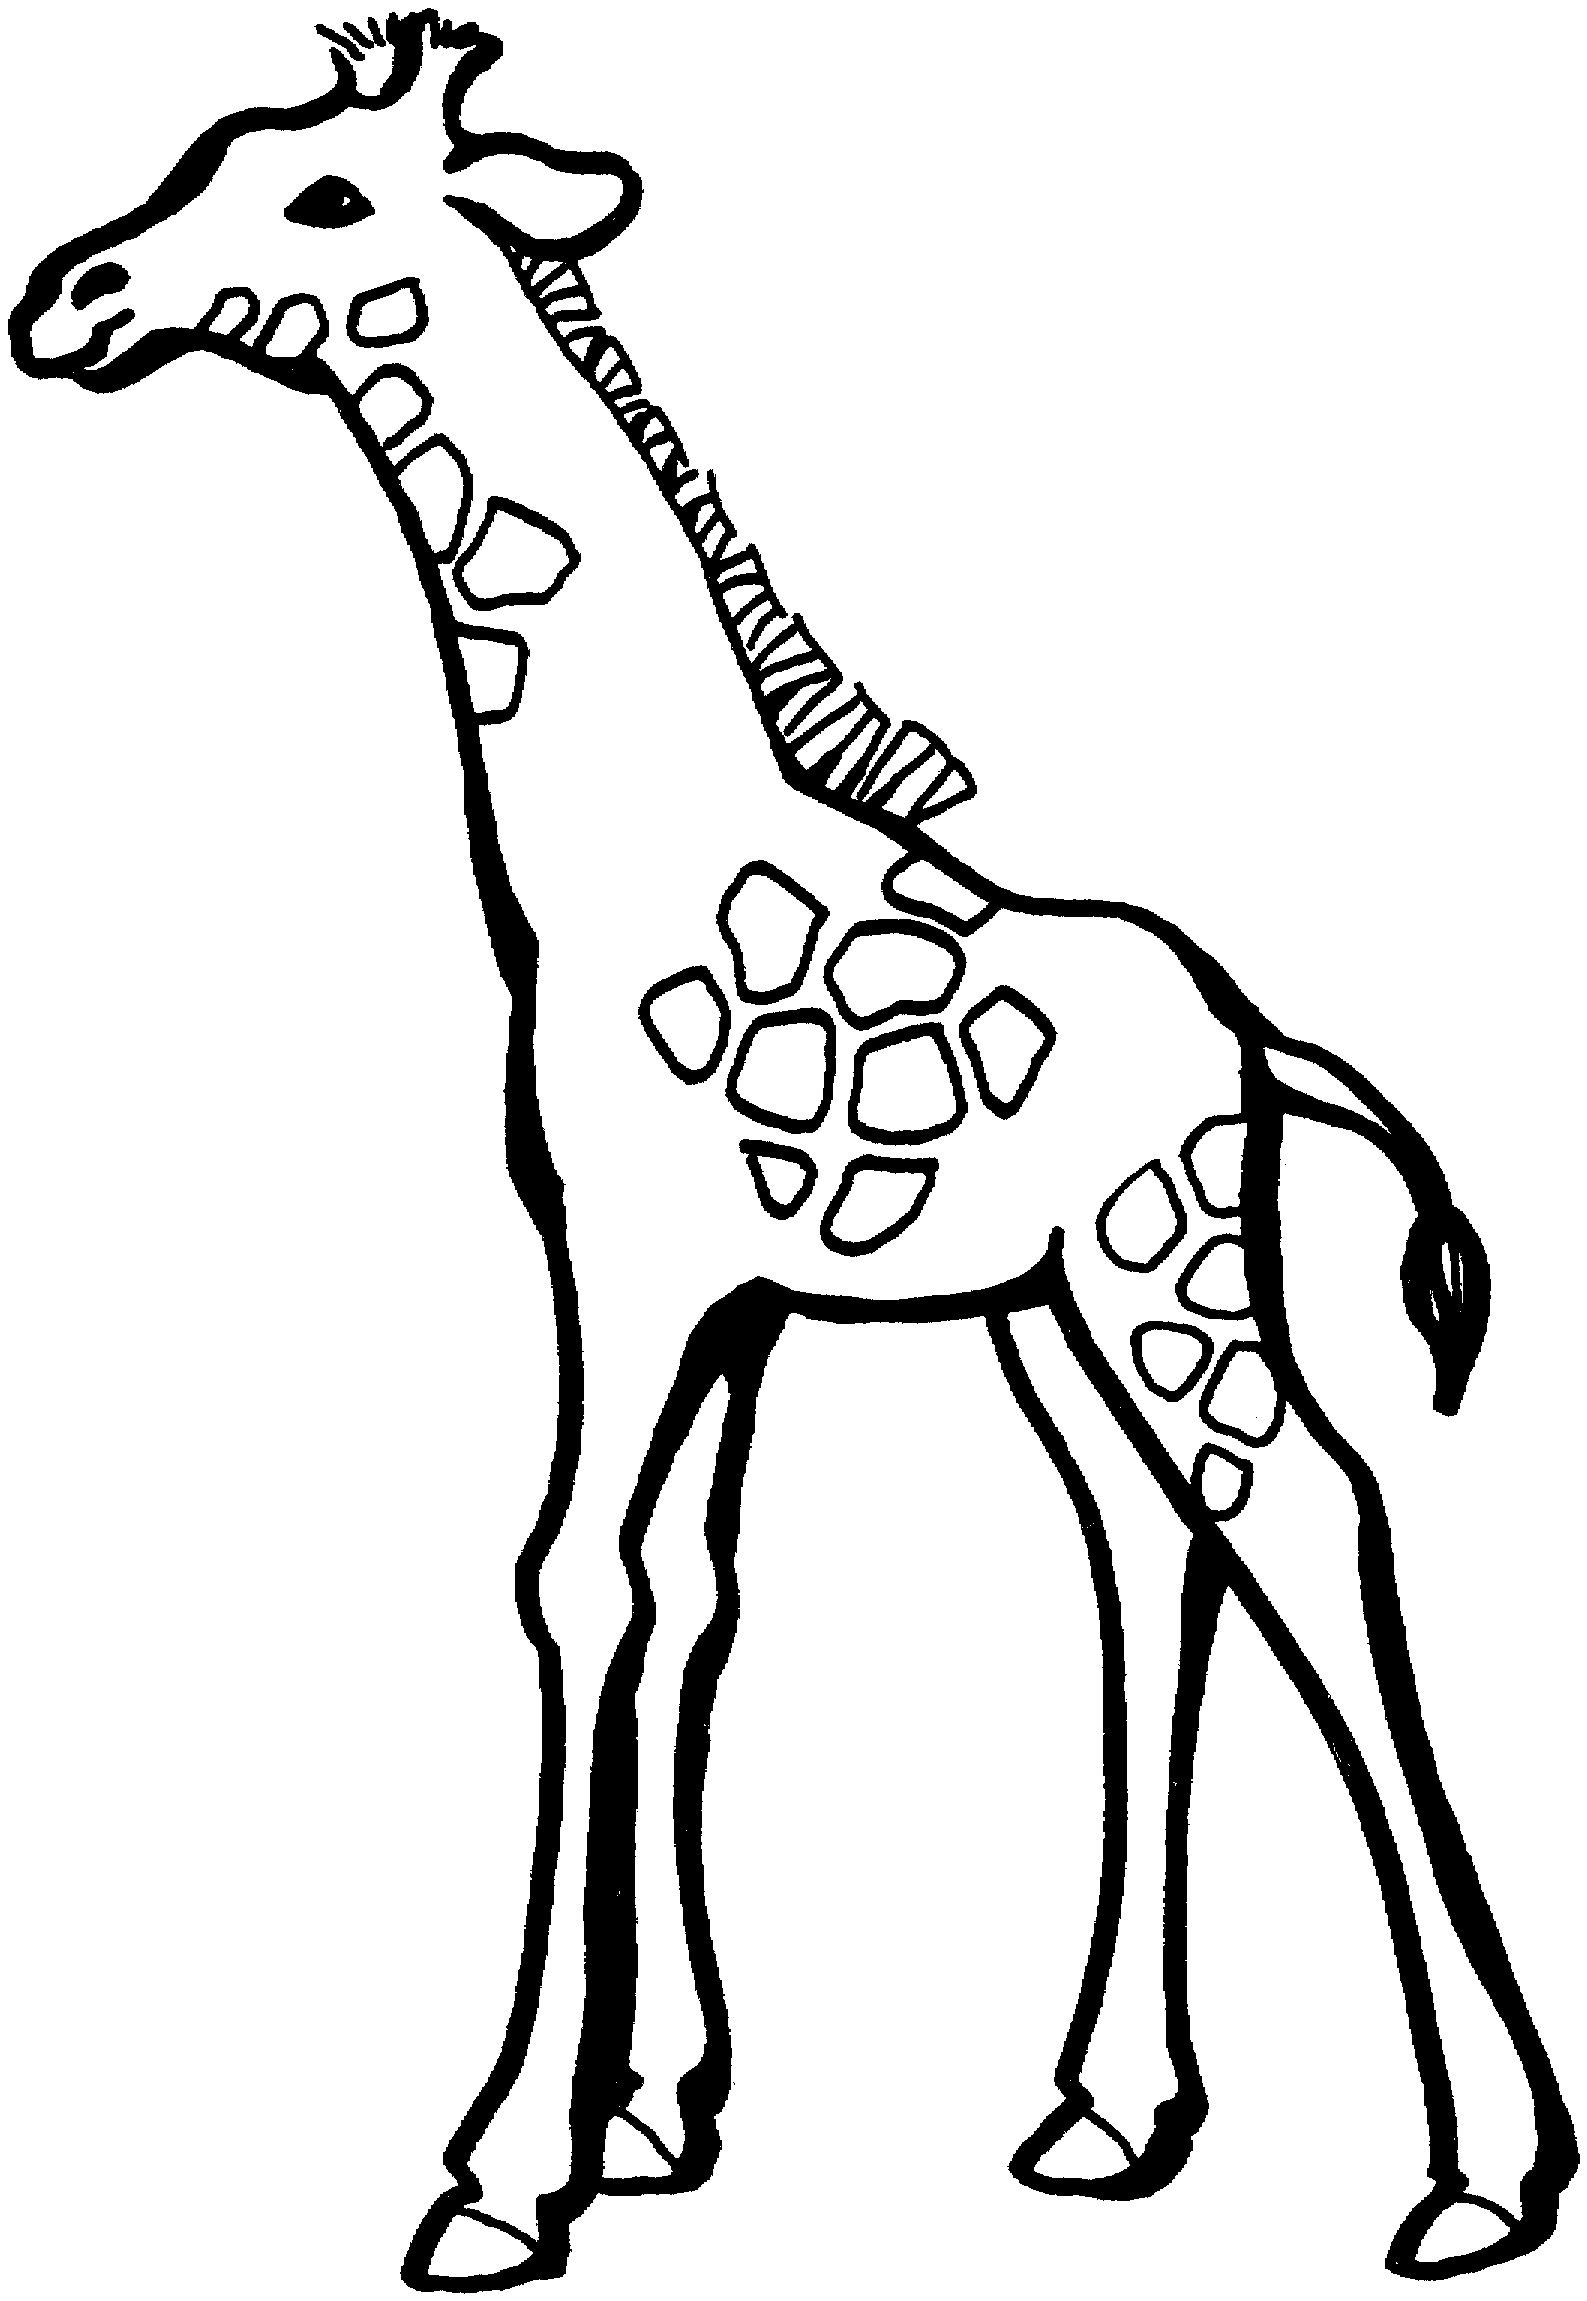 free giraffe coloring pages - photo#17